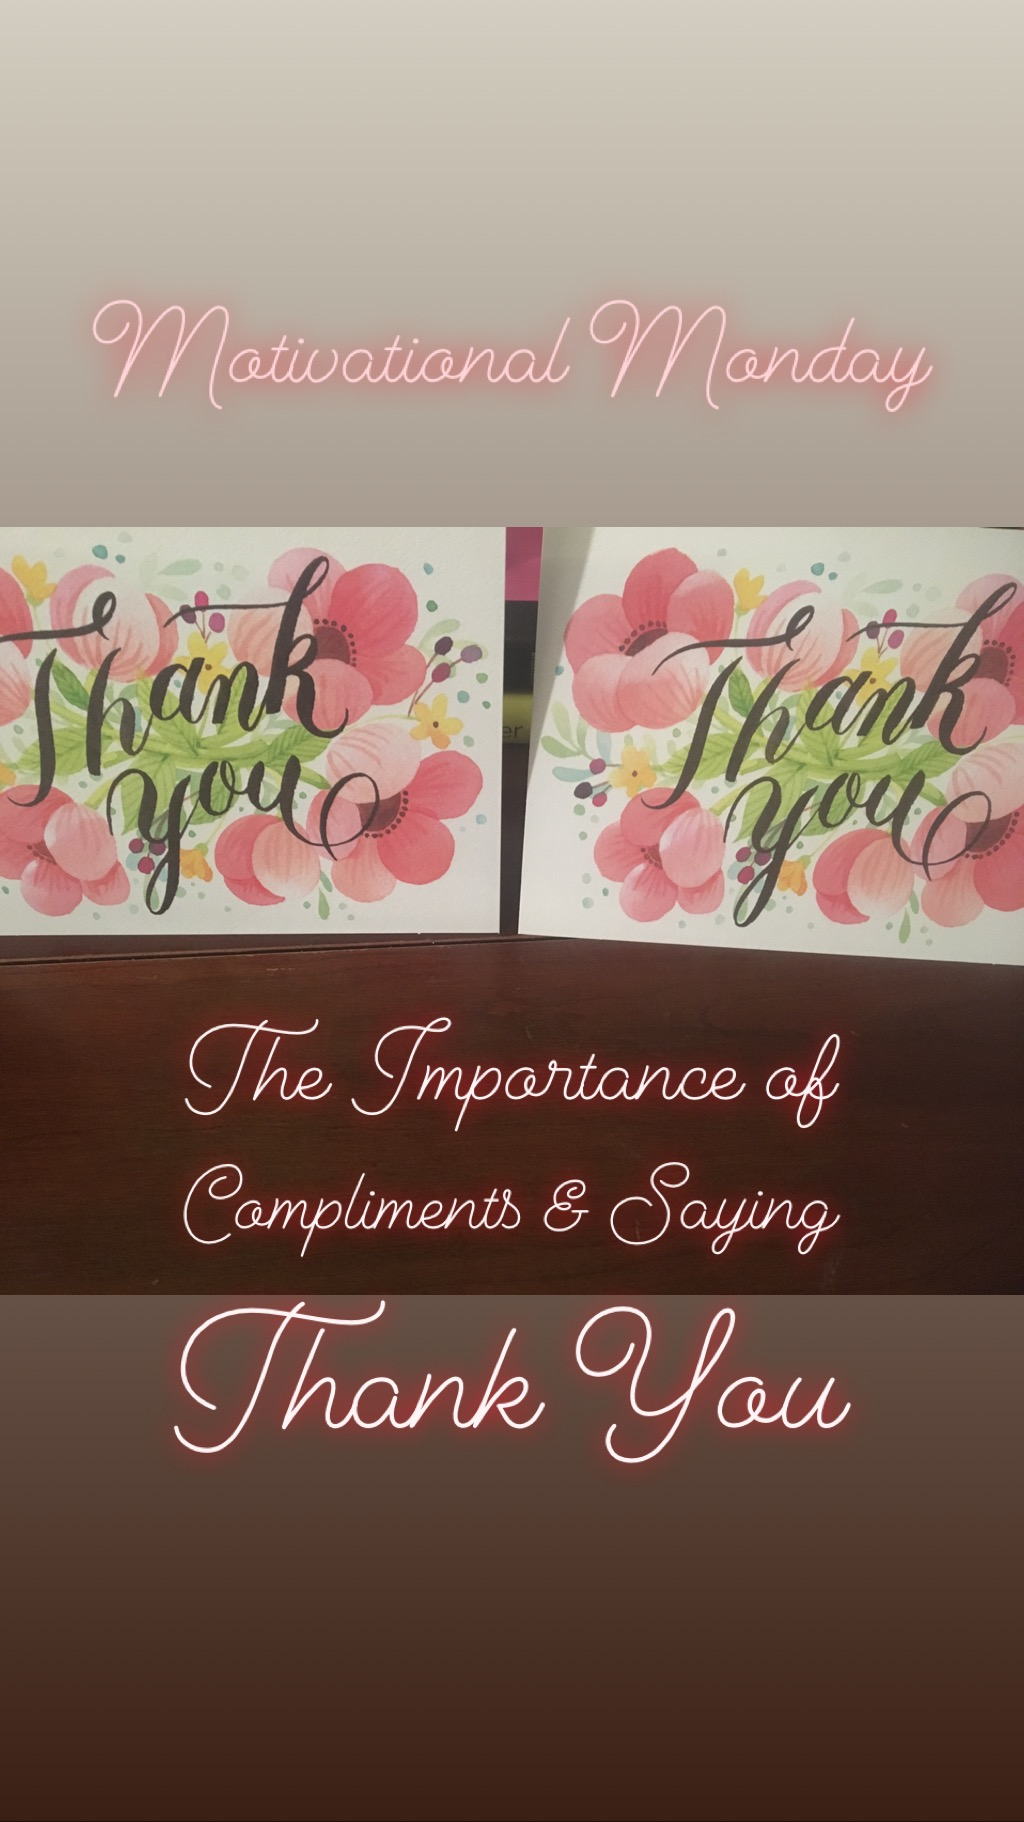 Motivational Monday: The Importance of Compliments and Saying Thank You